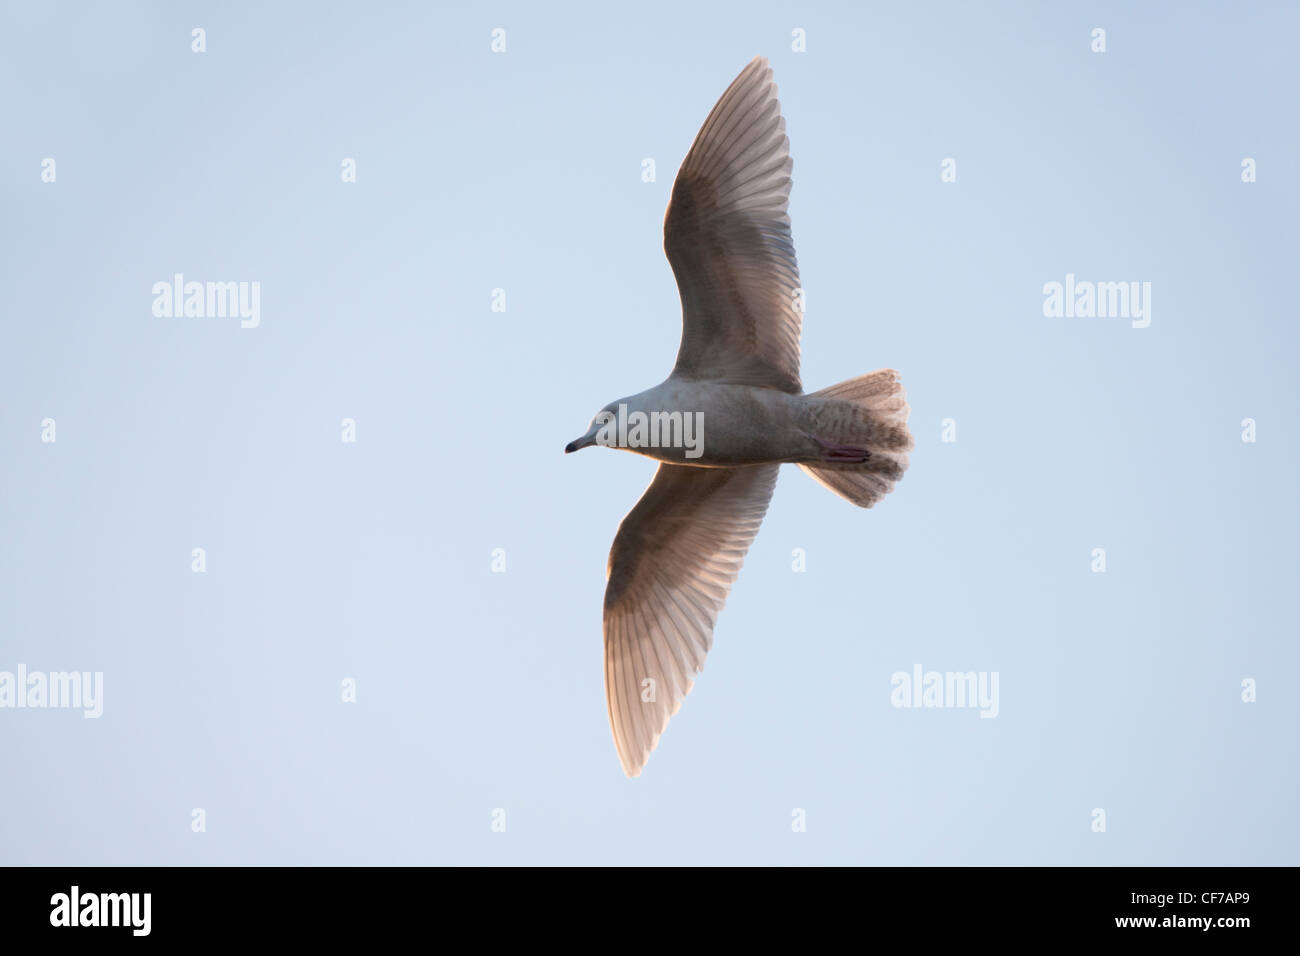 Iceland Gull glaucoides immature 1st winter plumage in flight - Stock Image